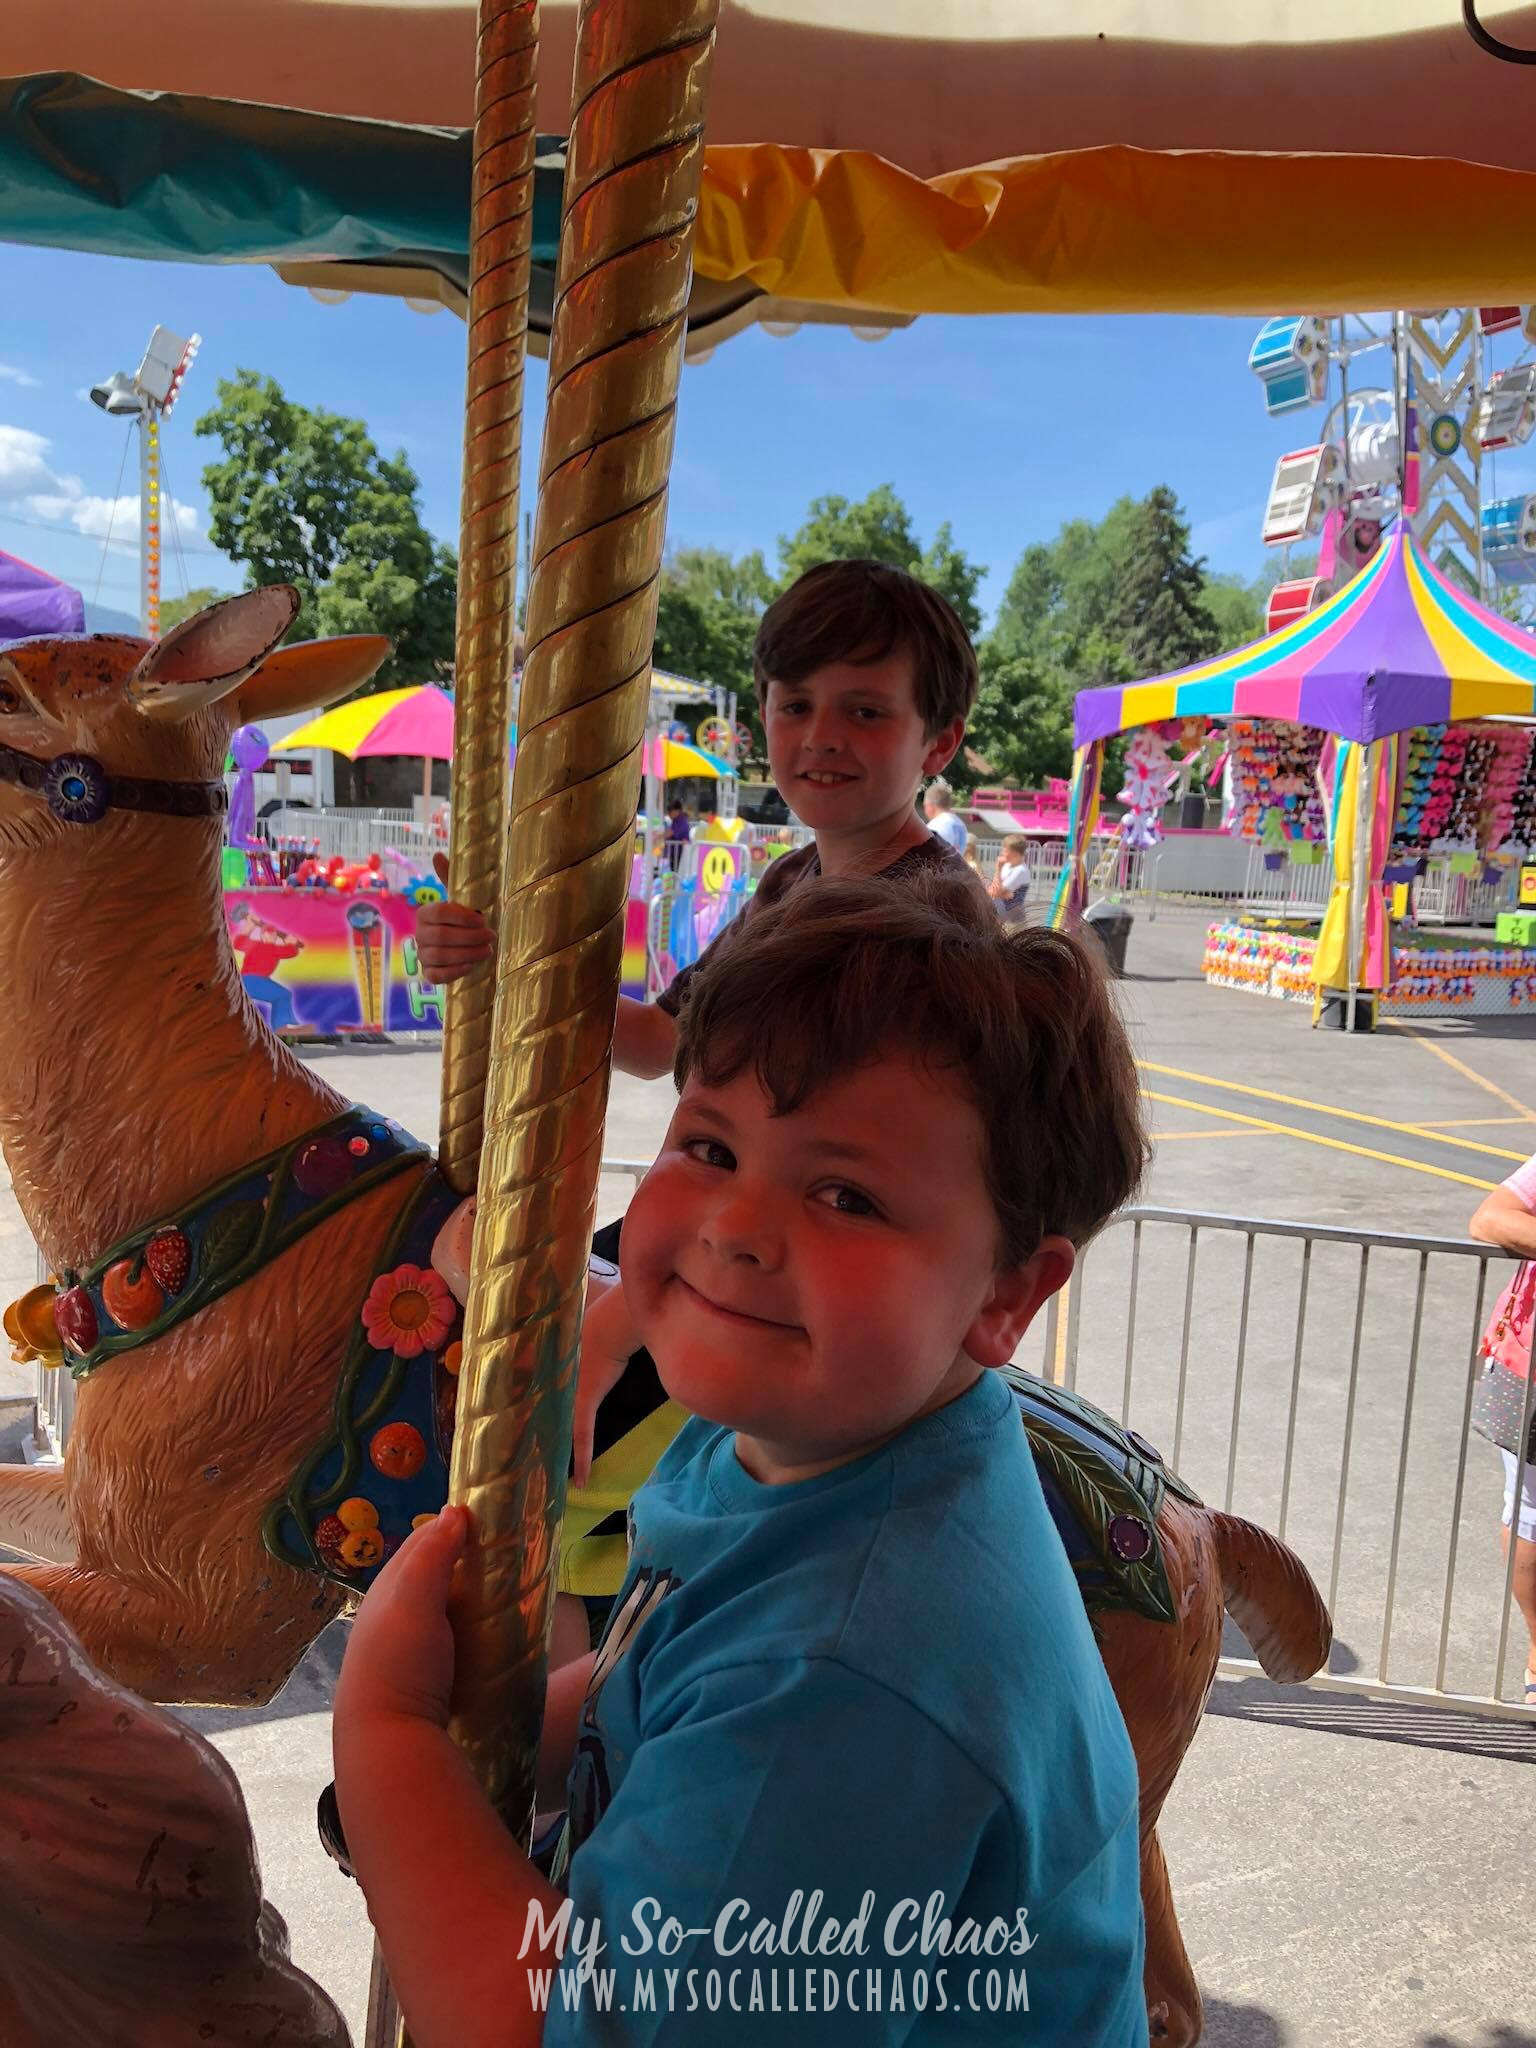 Kids riding the Carousel at Fiesta Days in Spanish Fork, UT